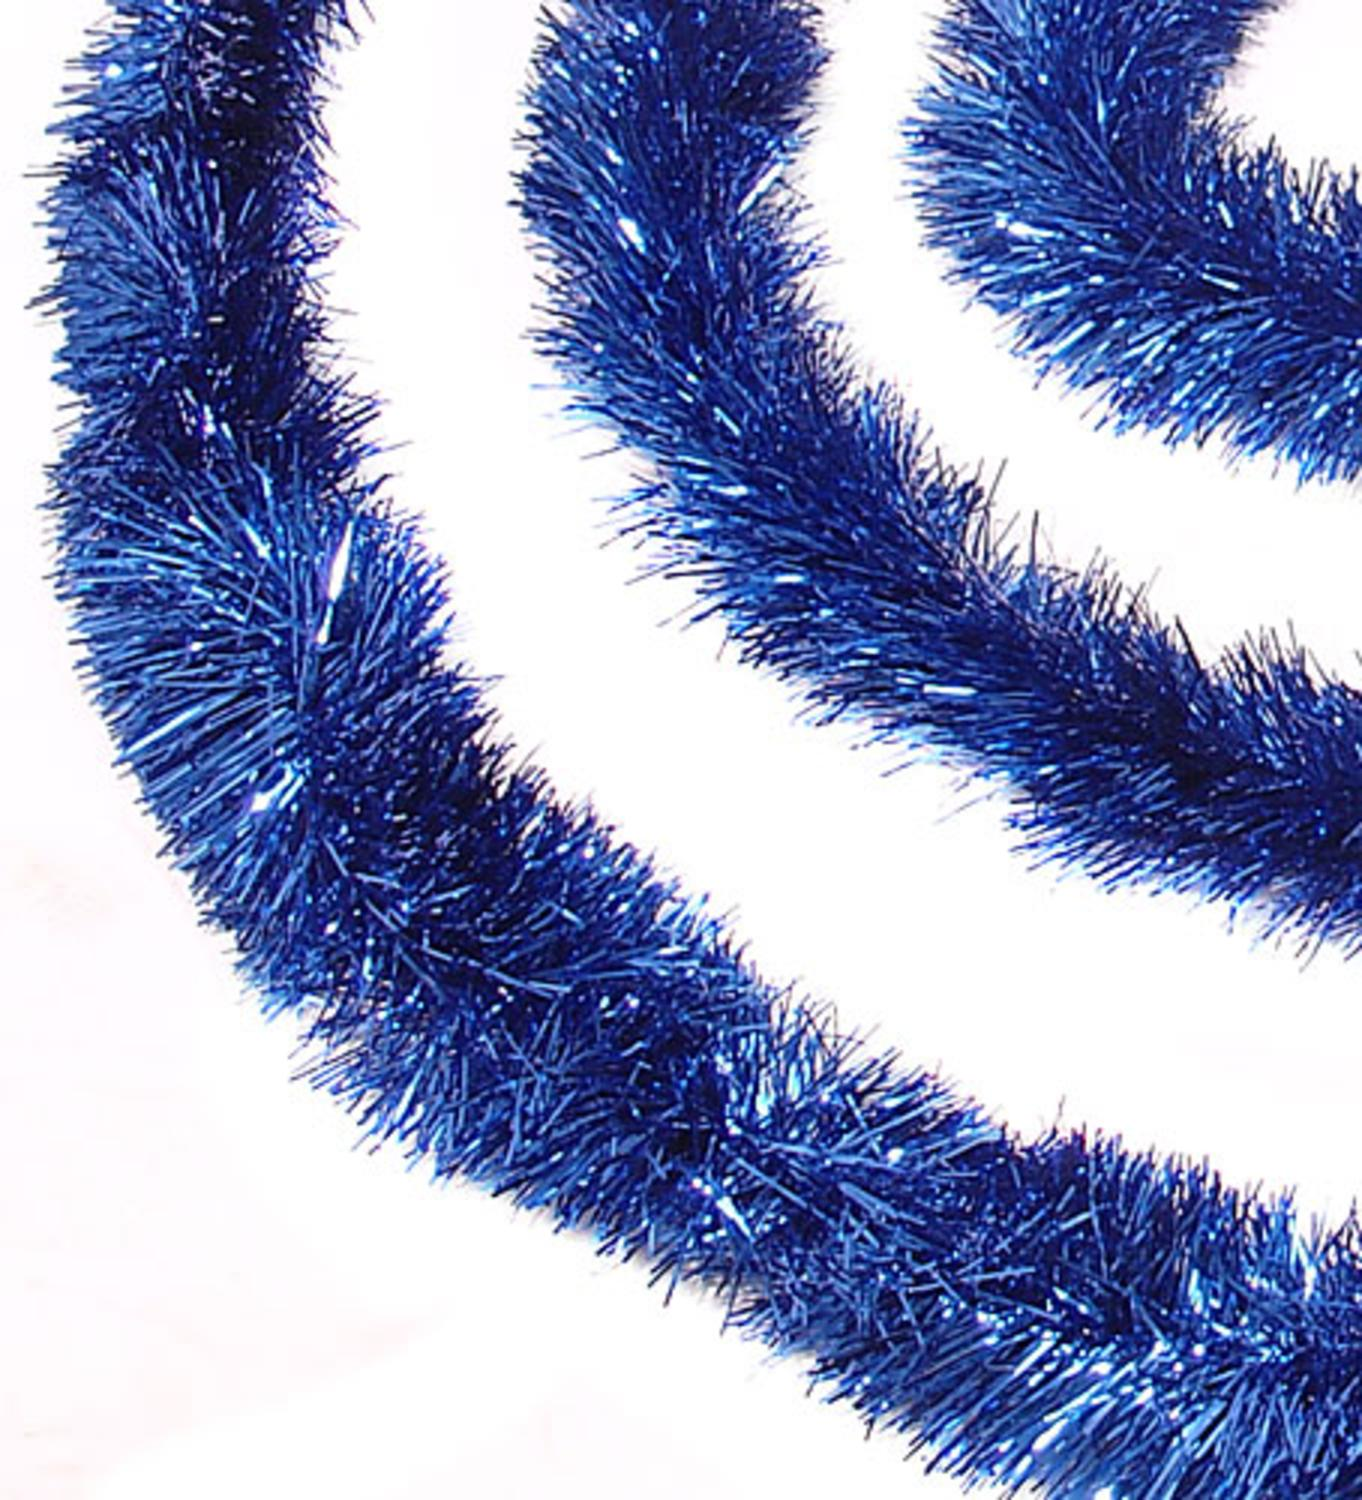 50' Shiny Blue Festive Christmas Hanukkah Foil Tinsel Garland - Unlit - 8 Ply